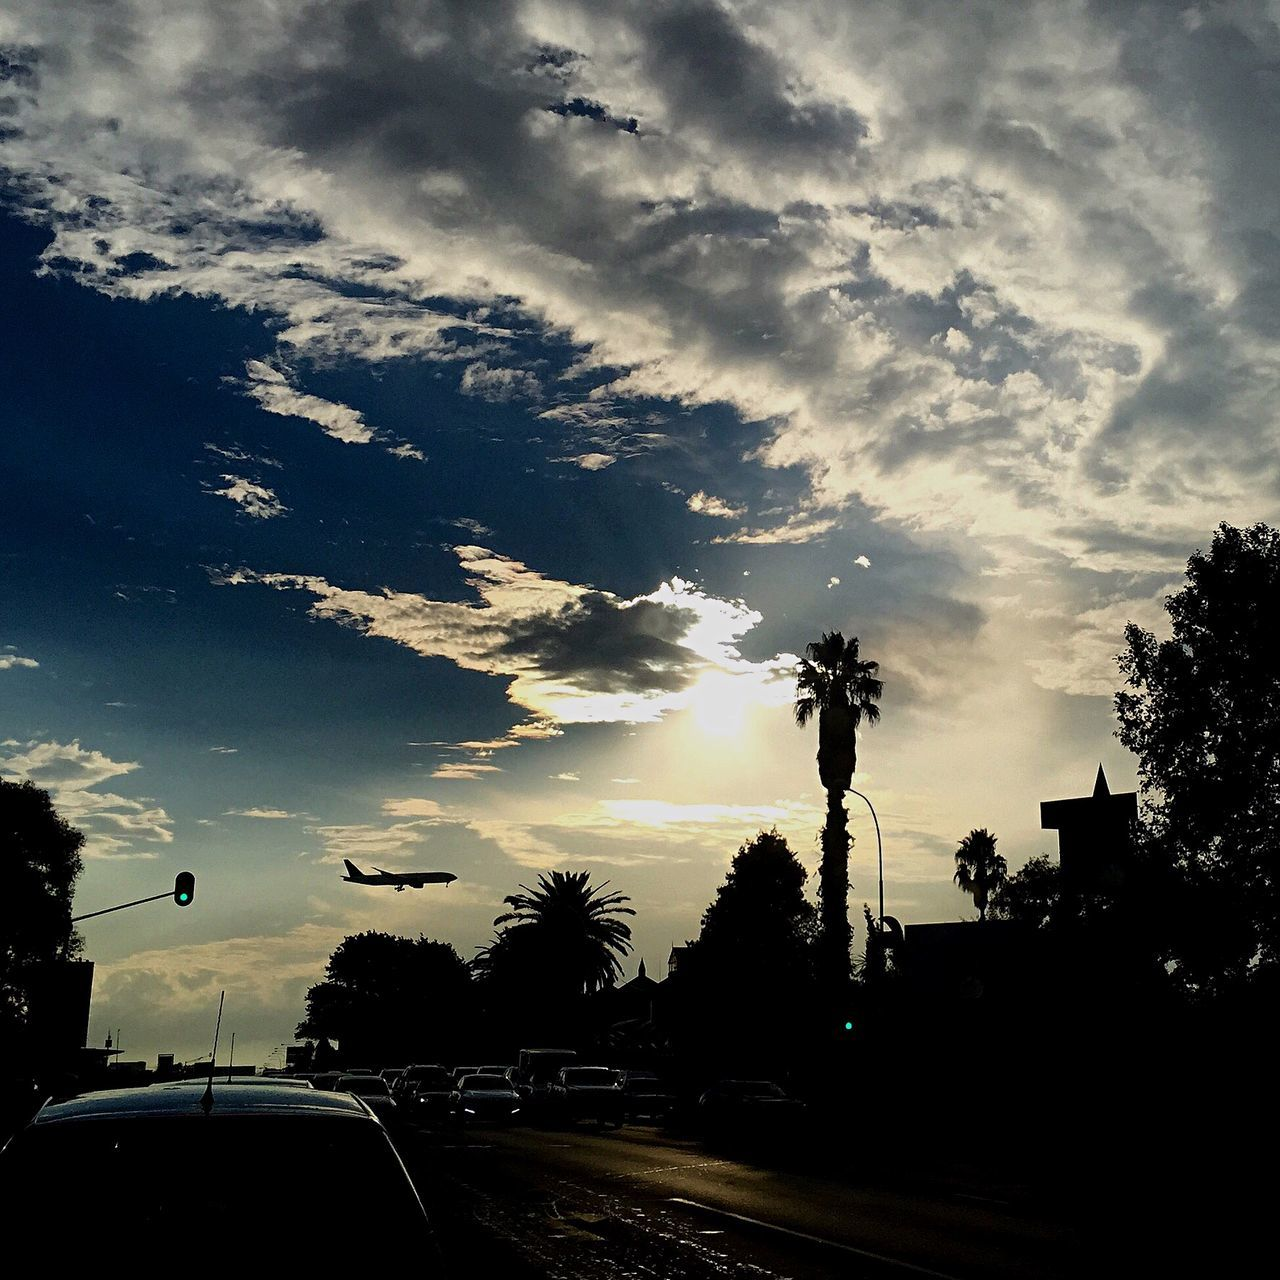 car, cloud - sky, sky, tree, silhouette, transportation, land vehicle, road, no people, sunset, street light, outdoors, city, nature, day